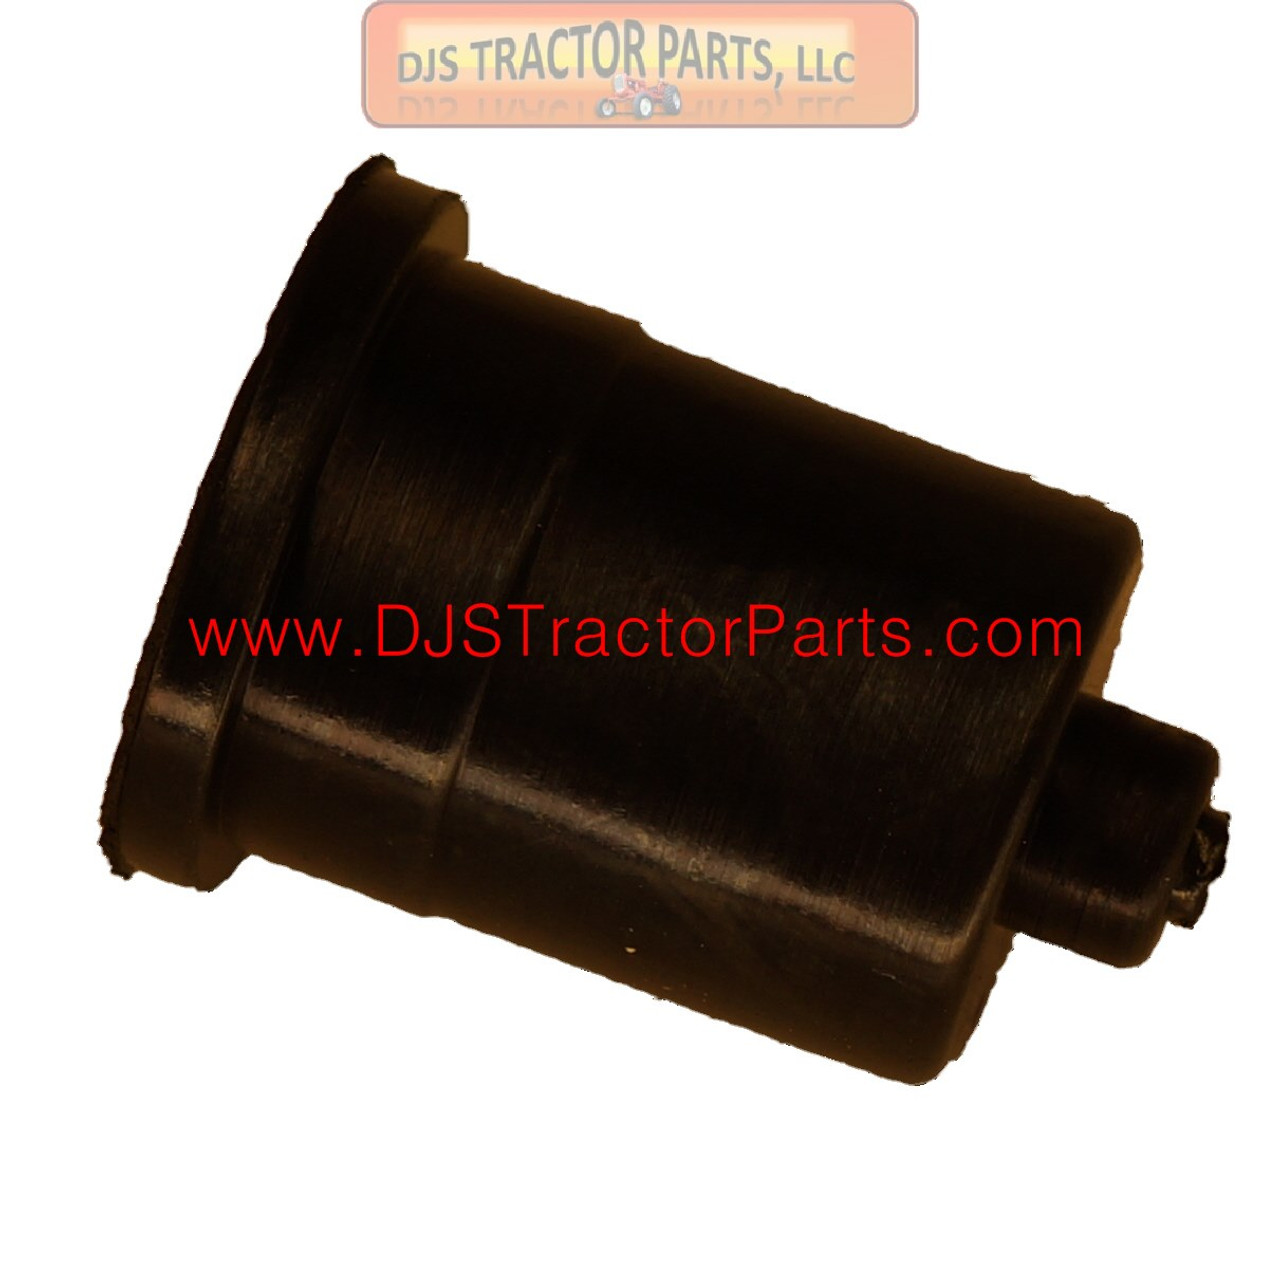 medium resolution of electrical outlet socket boot 1 wire style ab 2285d djs tractor parts llc